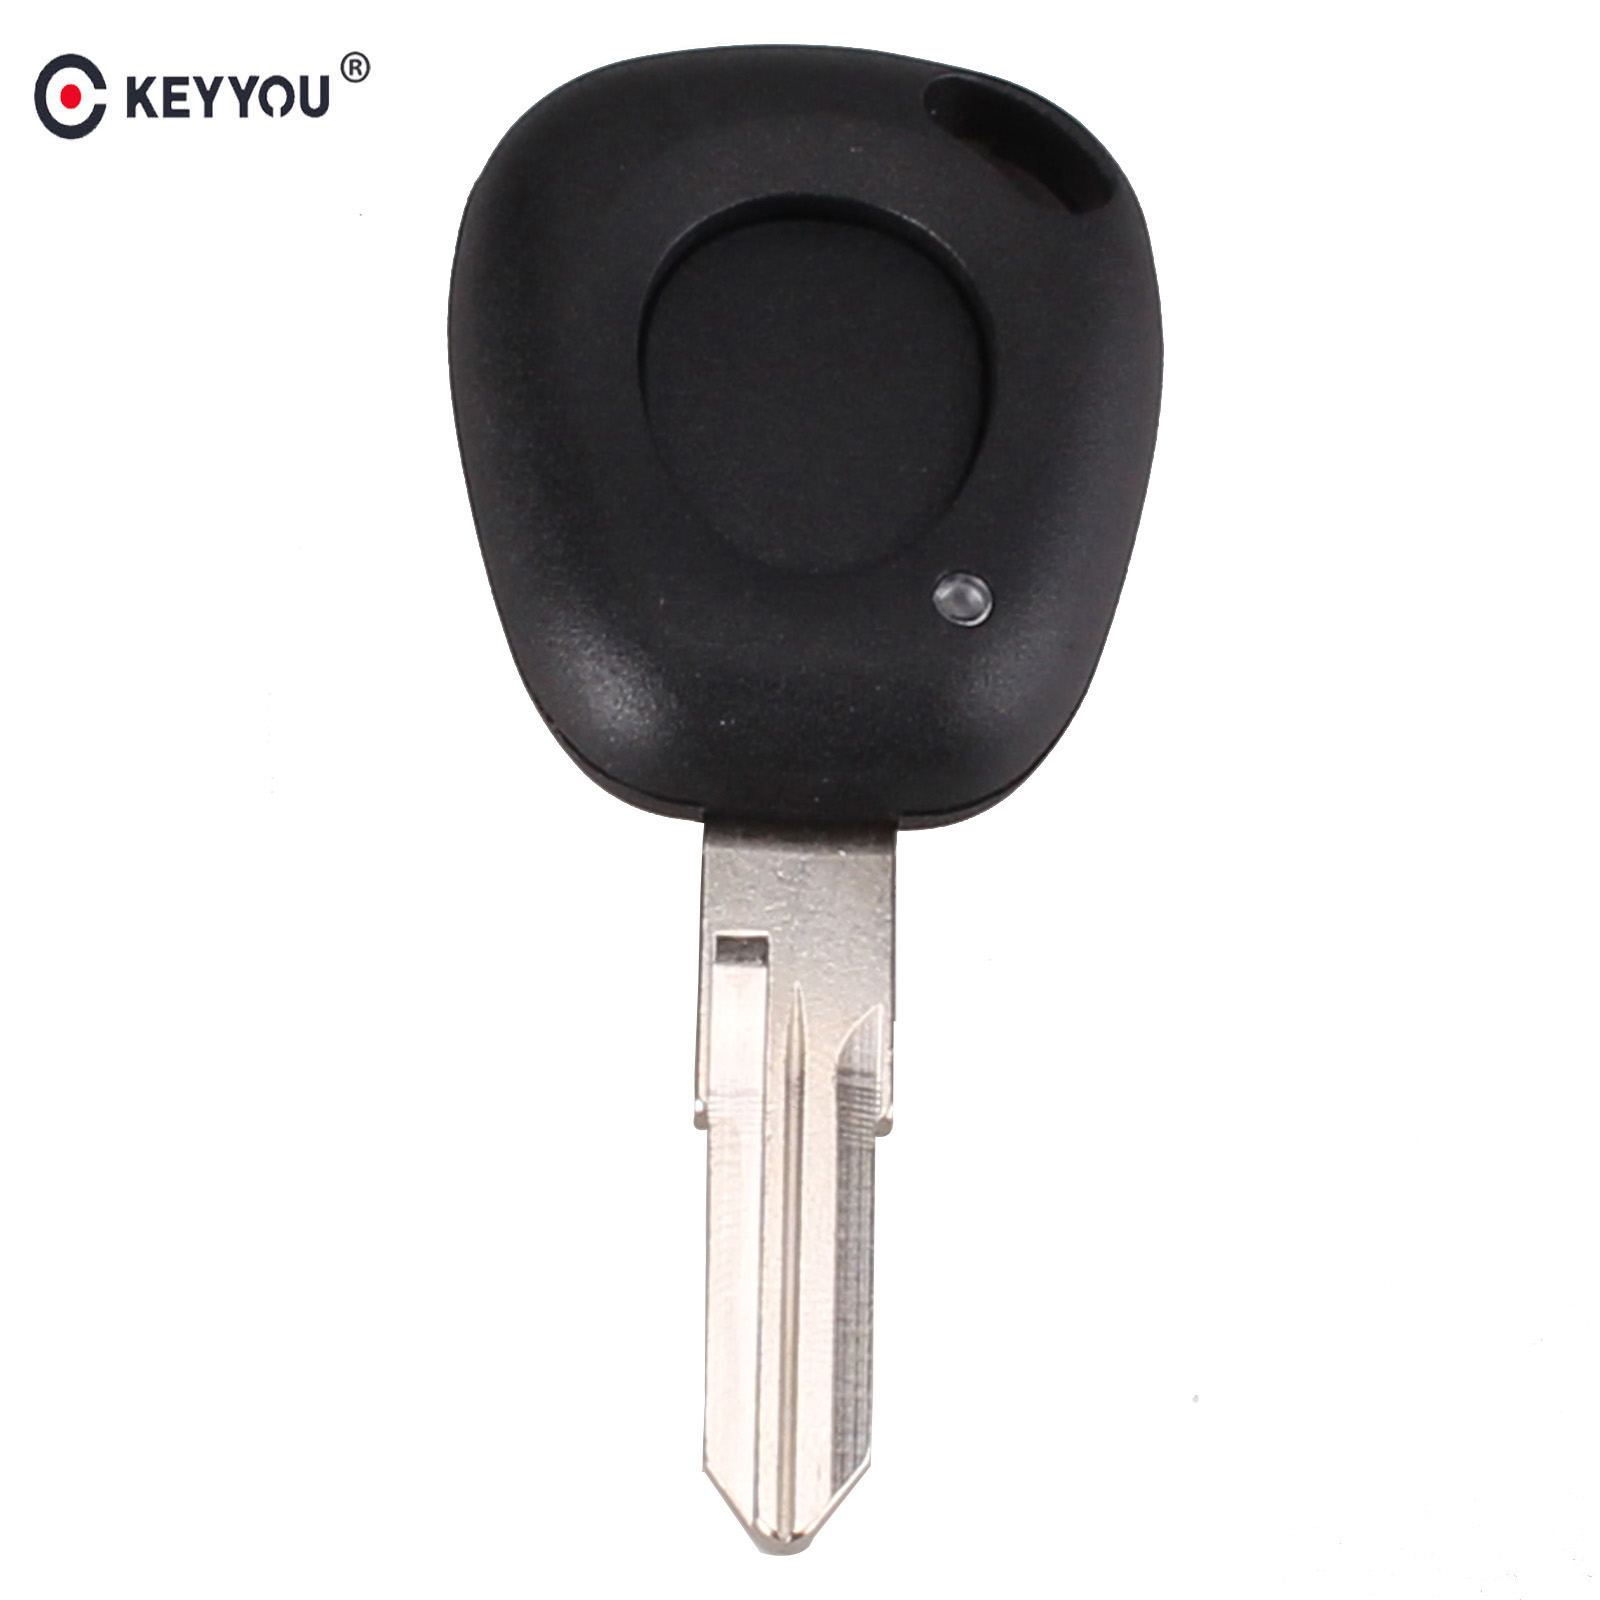 KEYYOU Replacement 1 Button Key Fob Remote Shell Case Uncut Blade For Renault Espace Twingo Clio Free shipping jingyuqin new 1 button uncut blade remote car key shell for renault twingo clio kangoo master no chip keyless entry fob case page 2